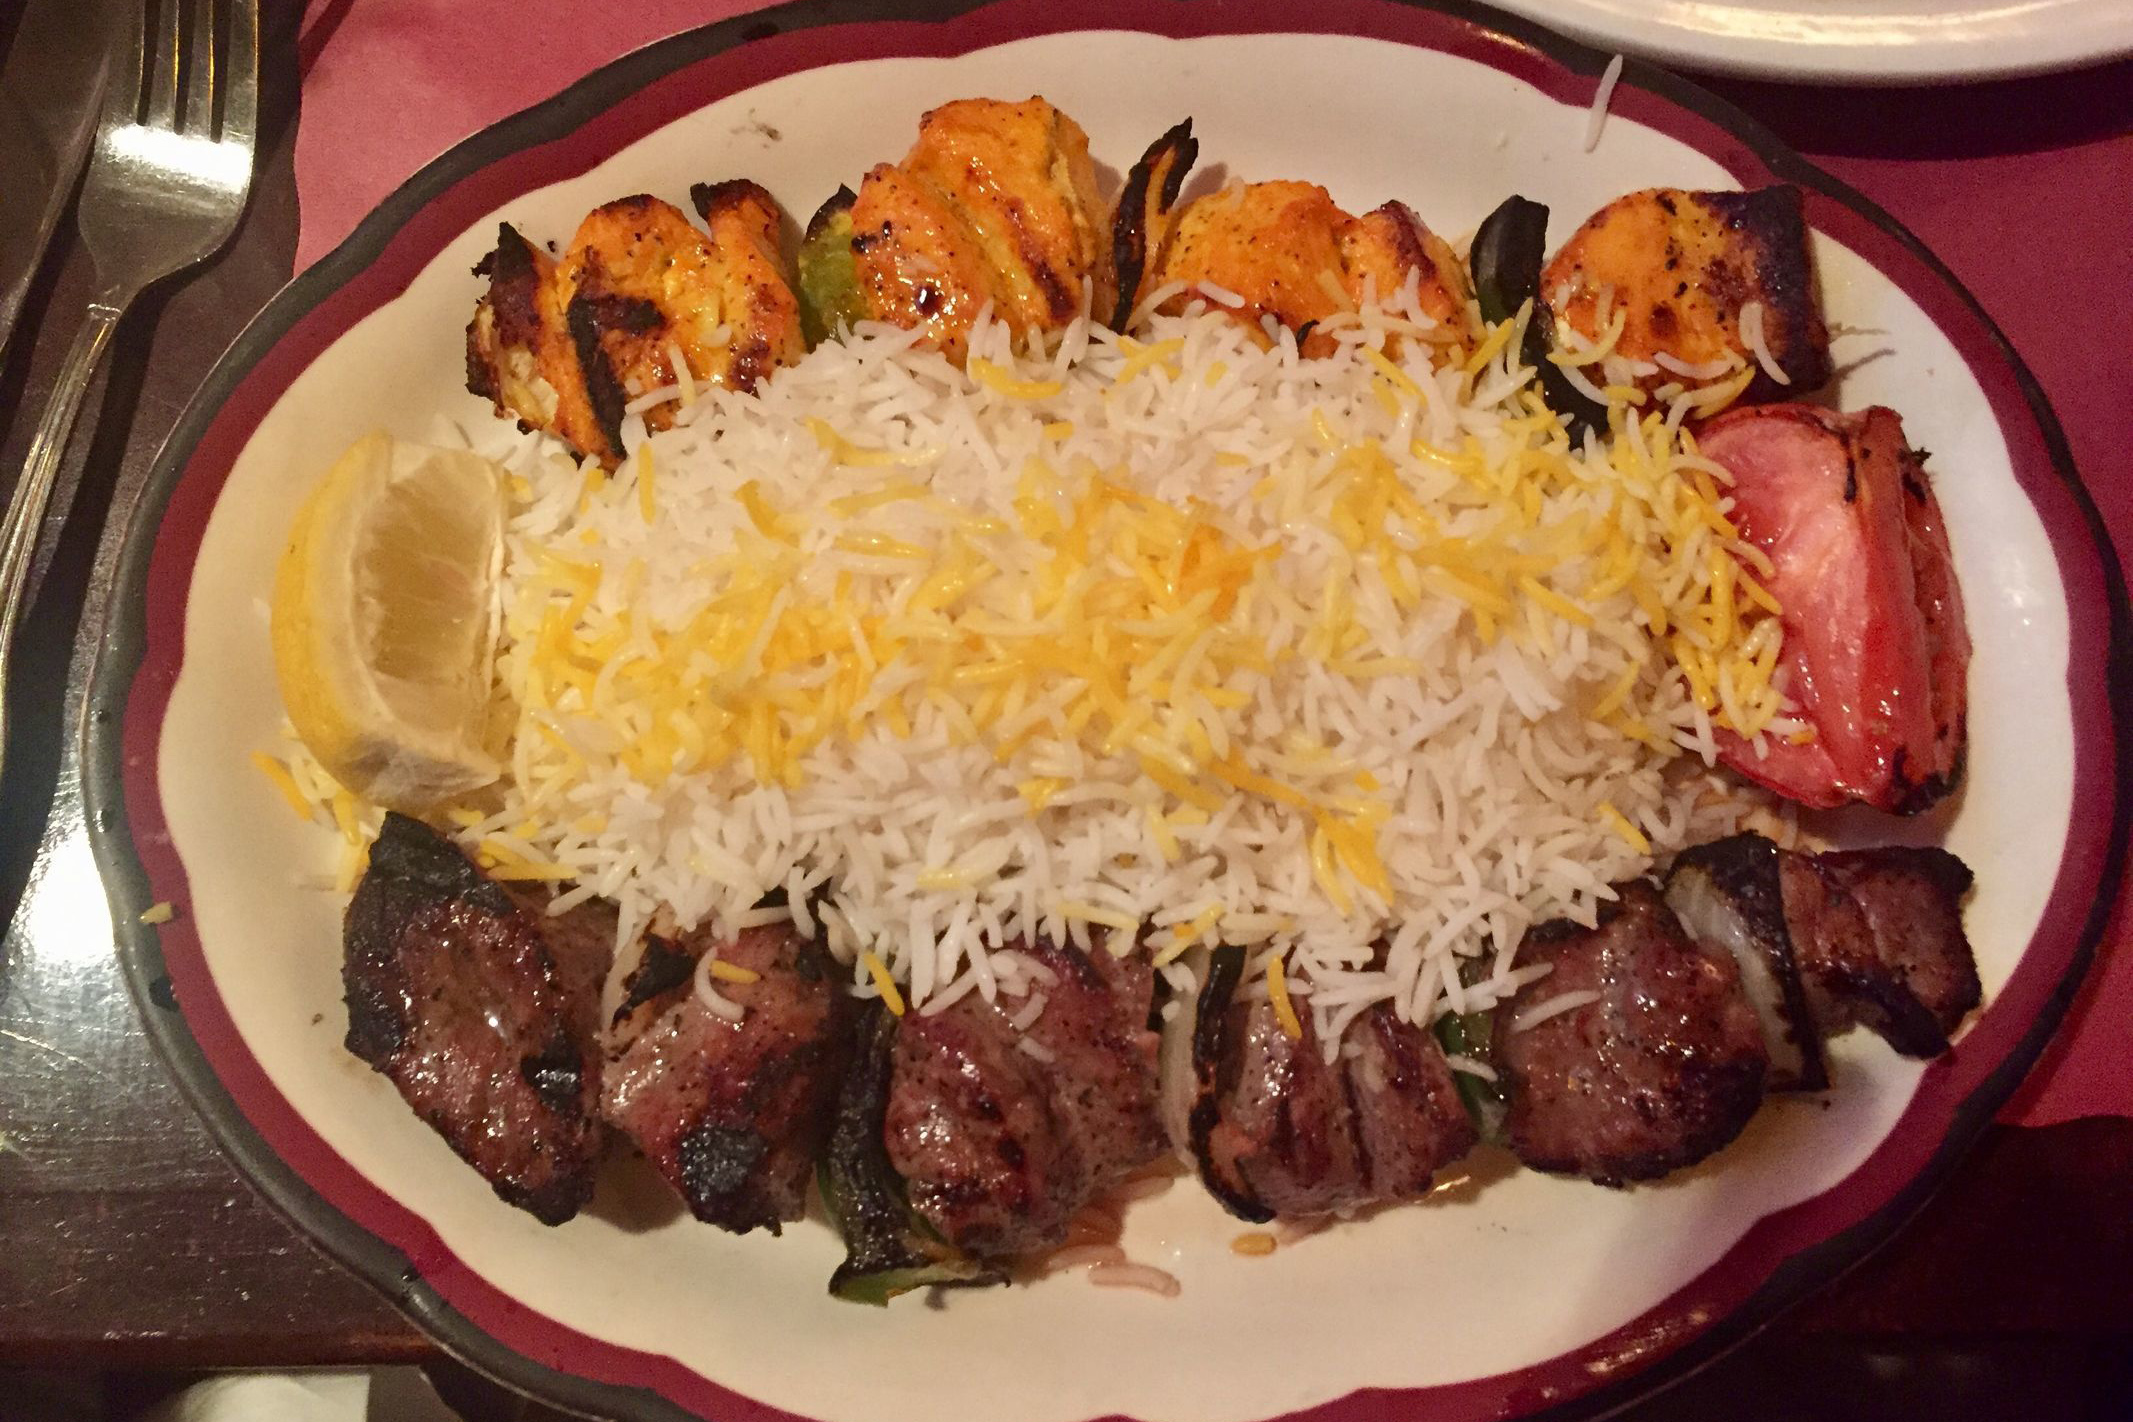 Kebab platter at the Persian Grill. (CRAIG LABAN / Staff)